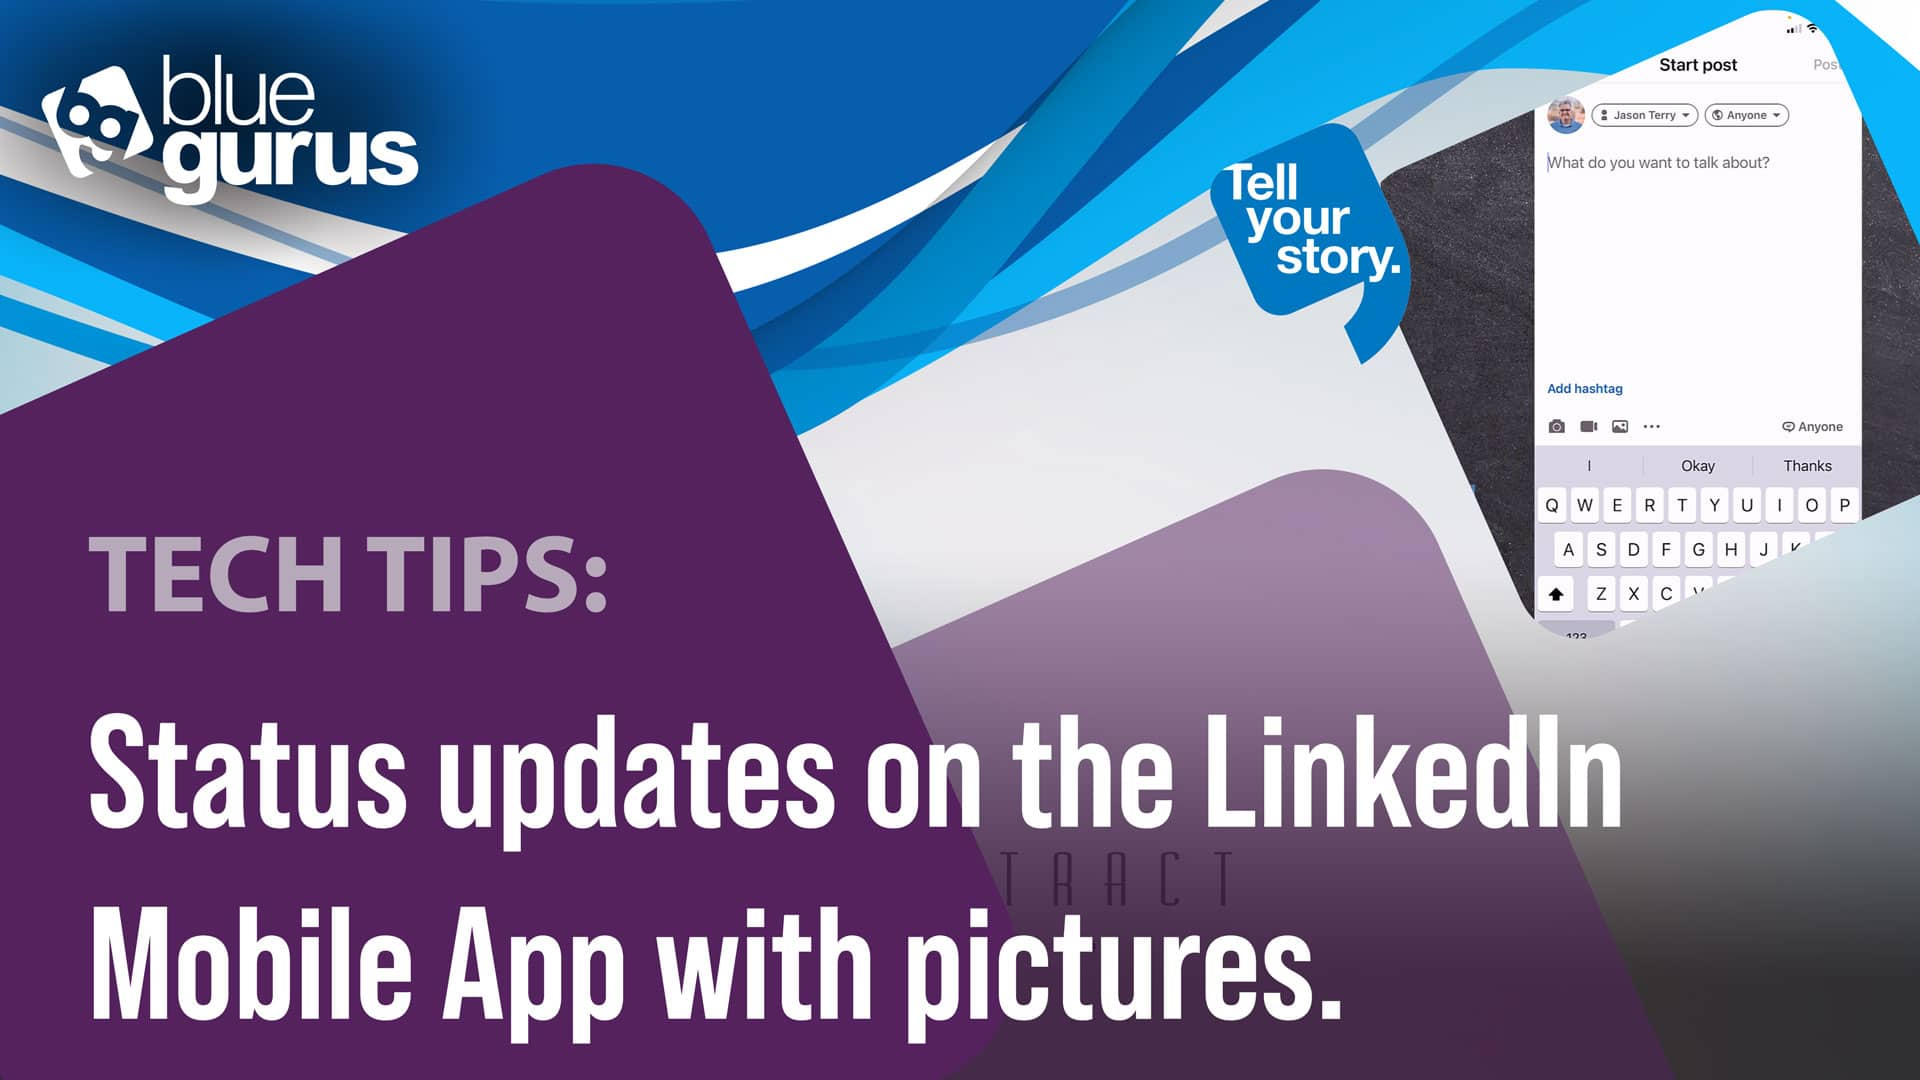 Status updates on the LinkedIn Mobile App... with pictures!